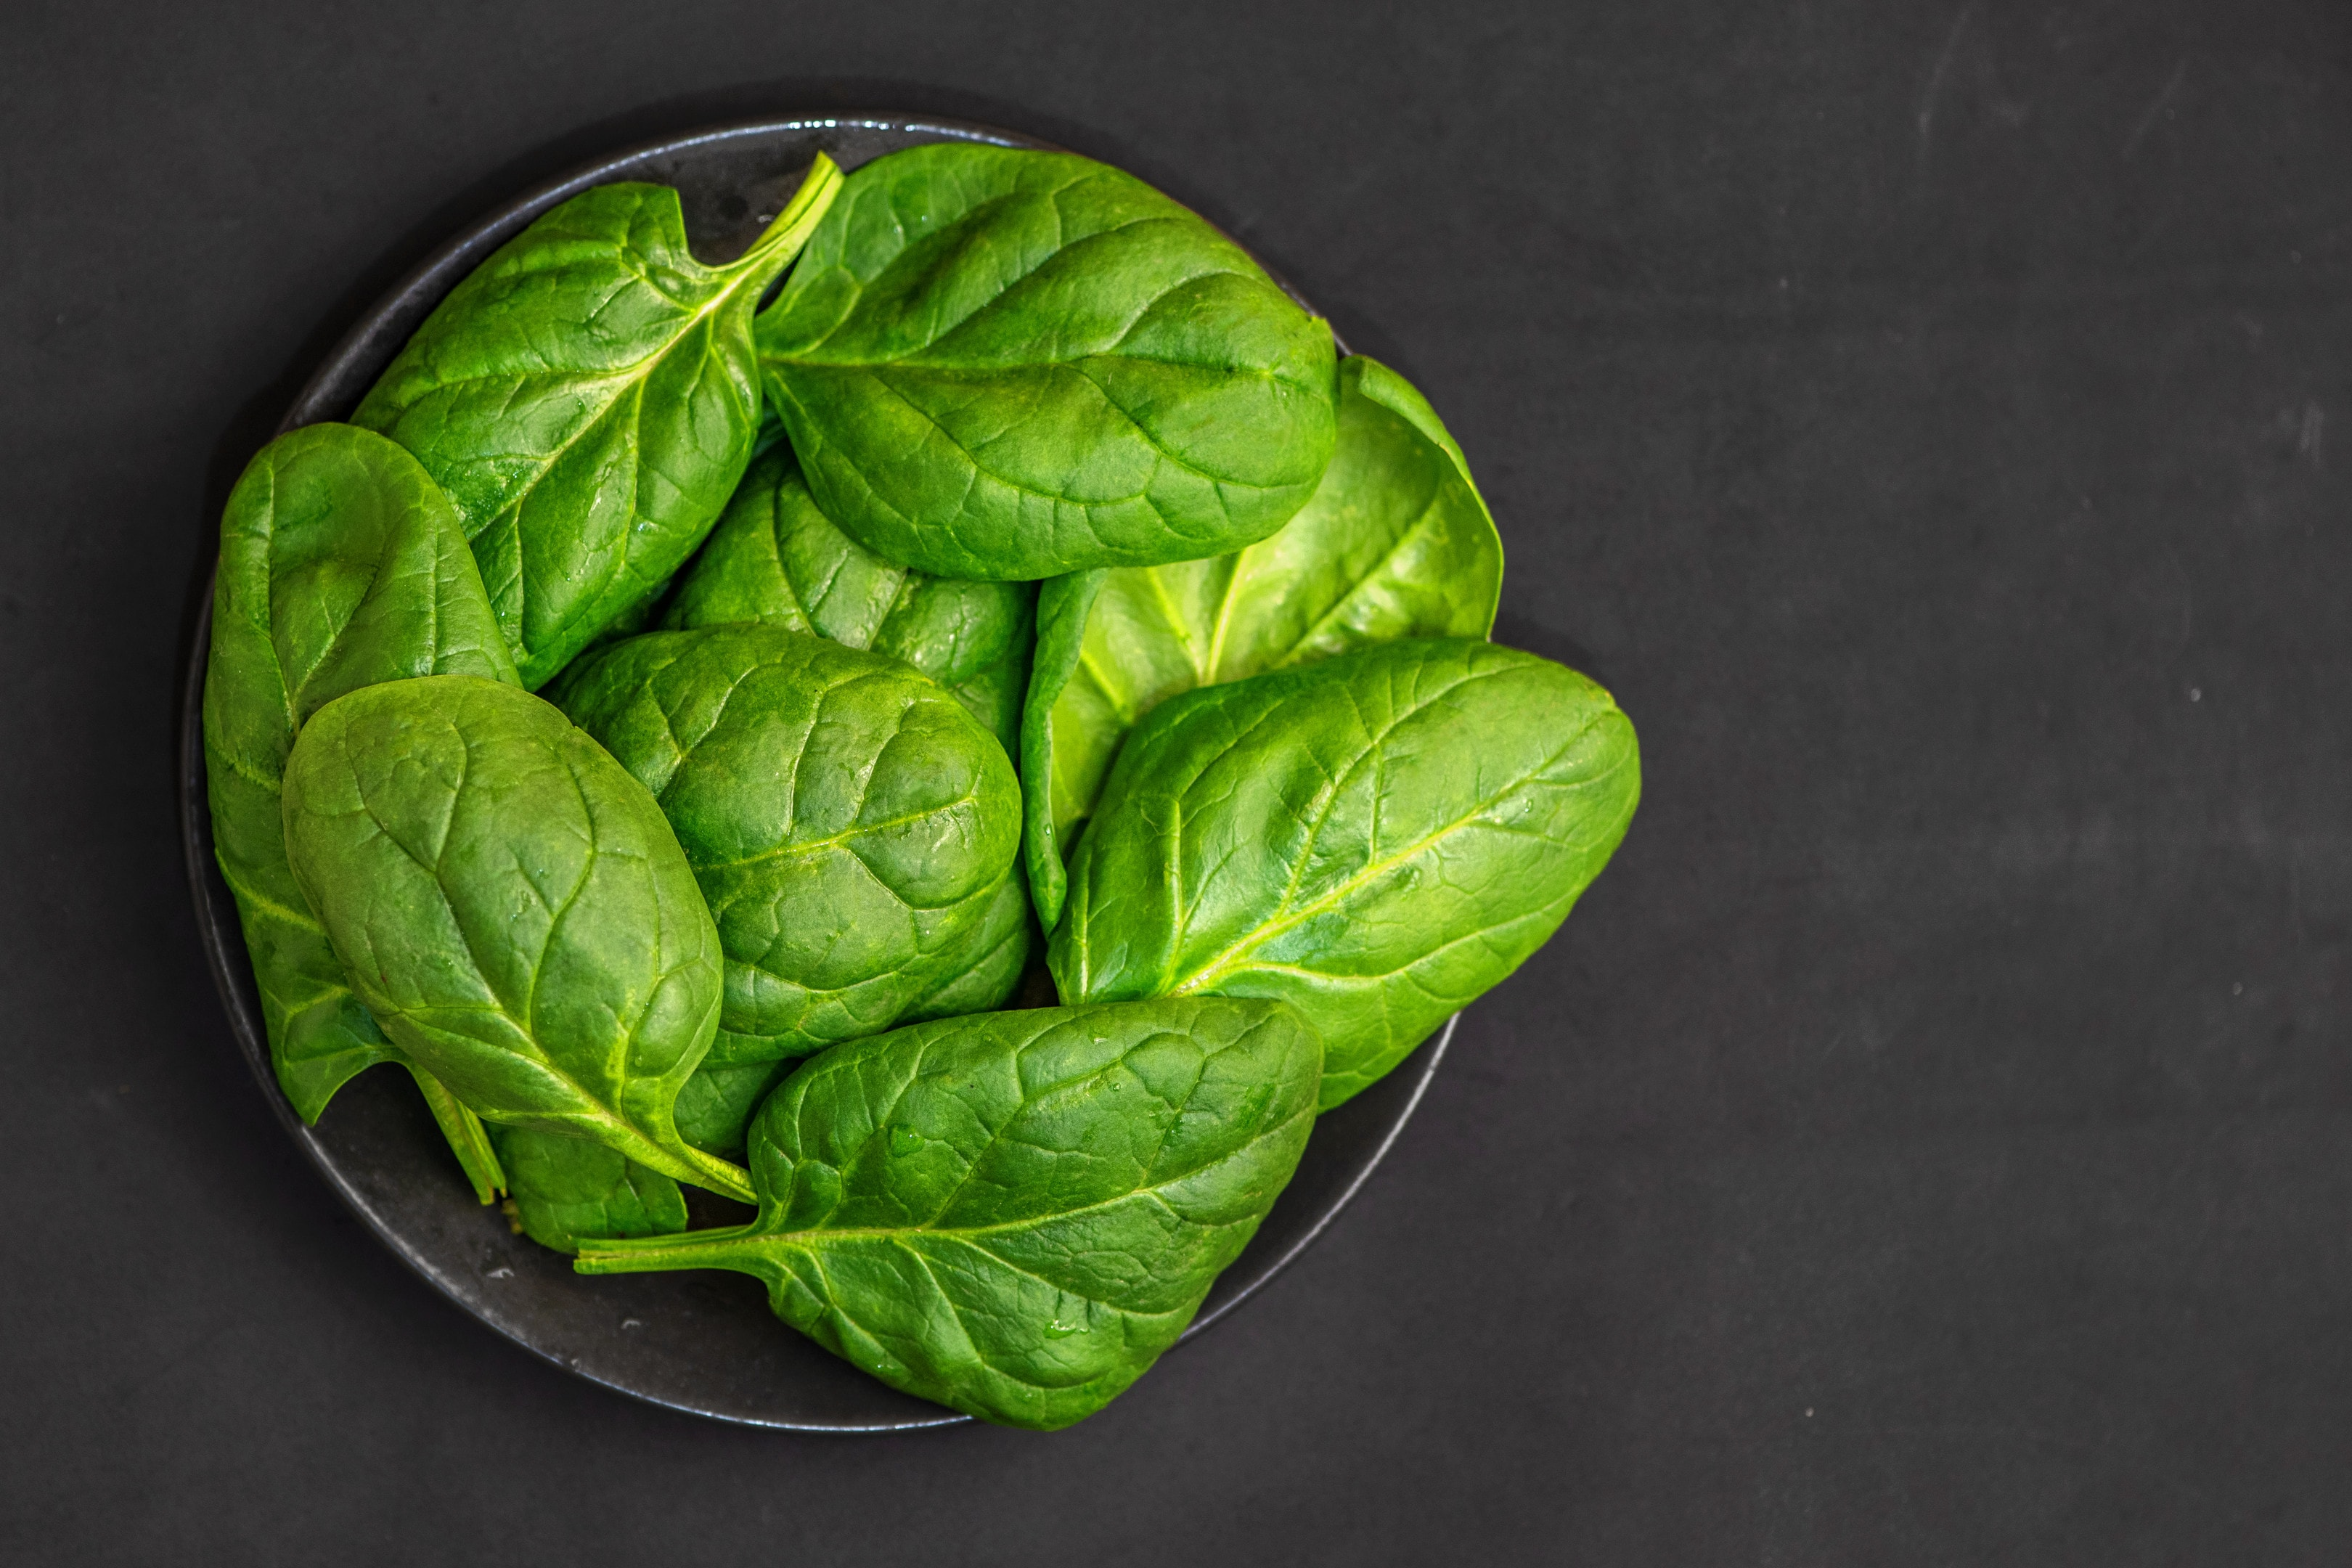 Fresh spinach leaves in bowl on dark background